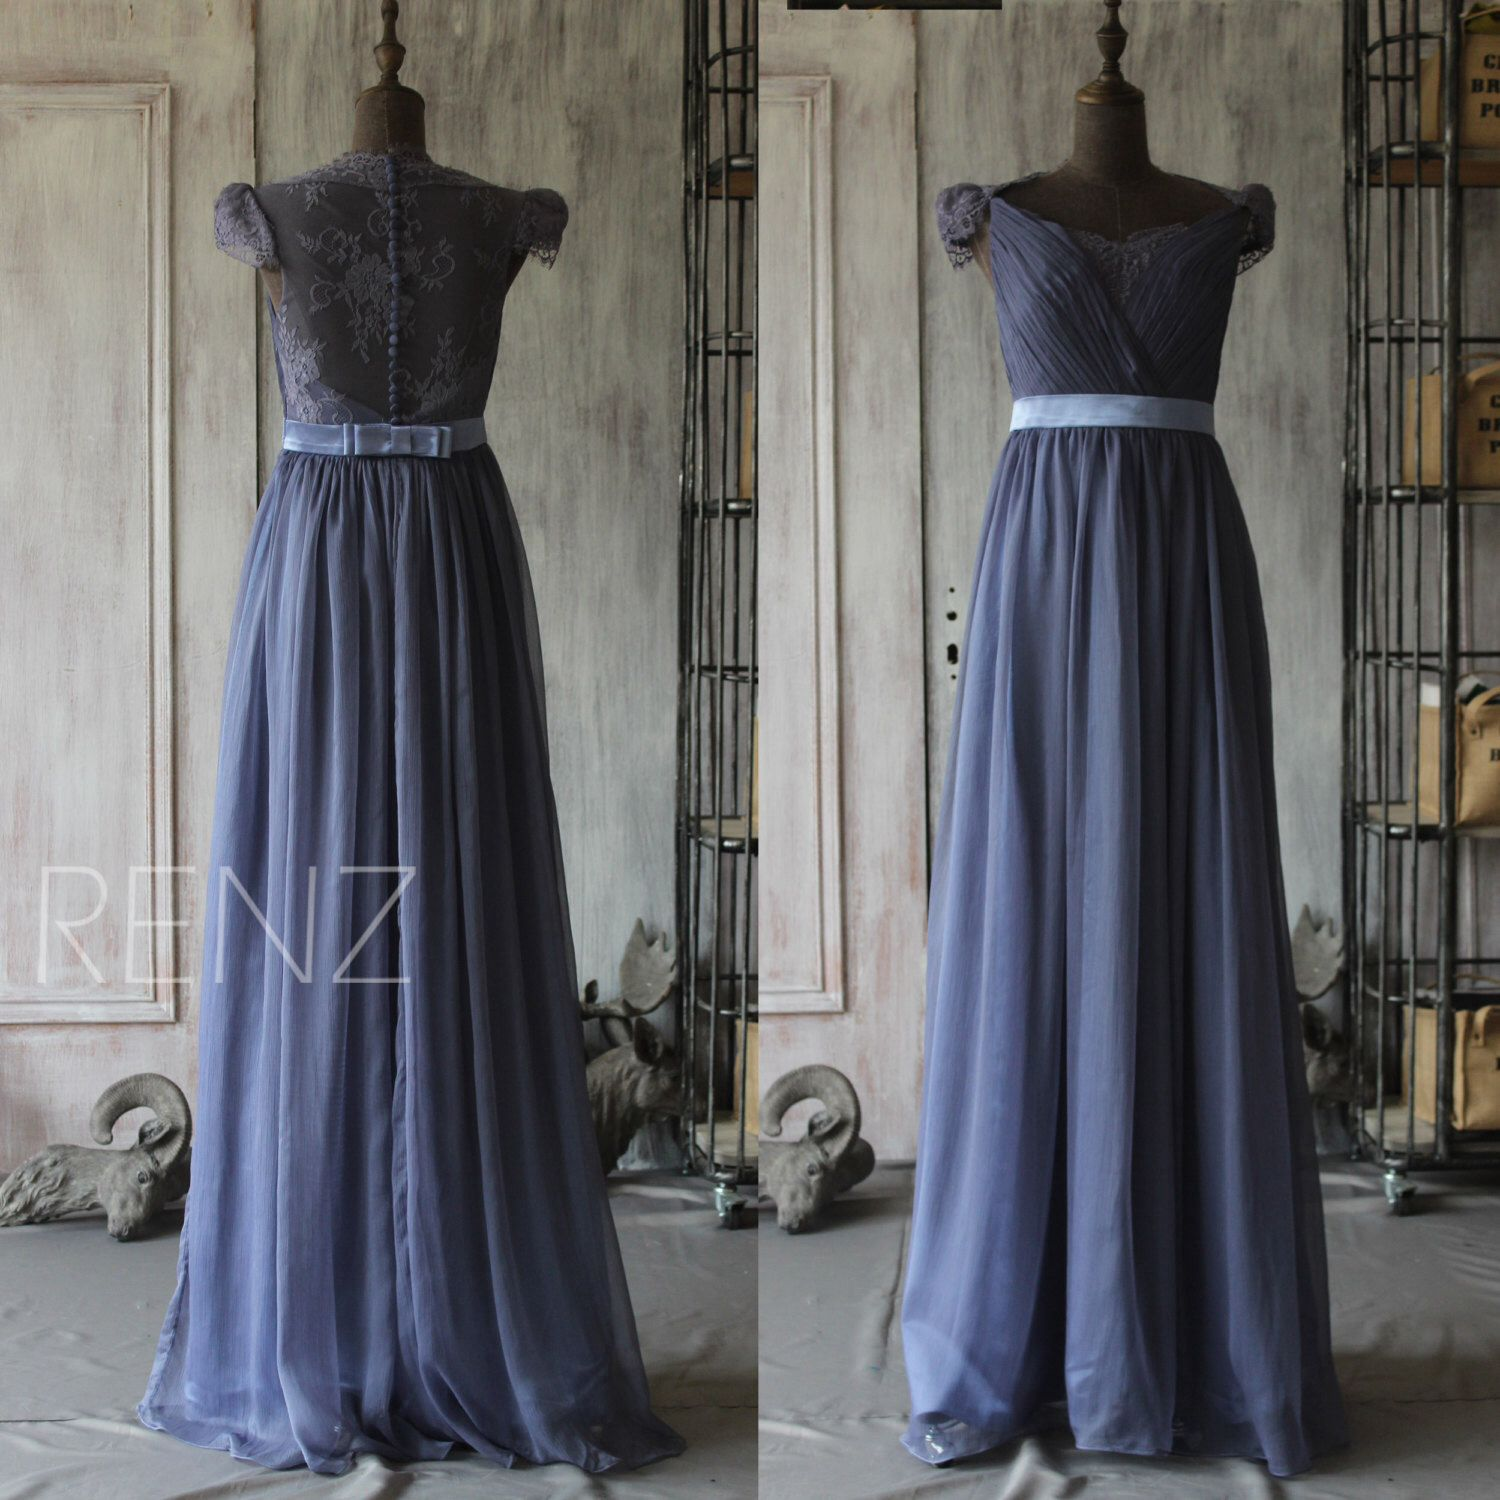 2015 New Lace Backless Bridesmaid dress with sleeves, Wedding dress, Party dress, Formal dress, floor length Elegant dress  (F120) by RenzRags on Etsy https://www.etsy.com/listing/223722171/2015-new-lace-backless-bridesmaid-dress